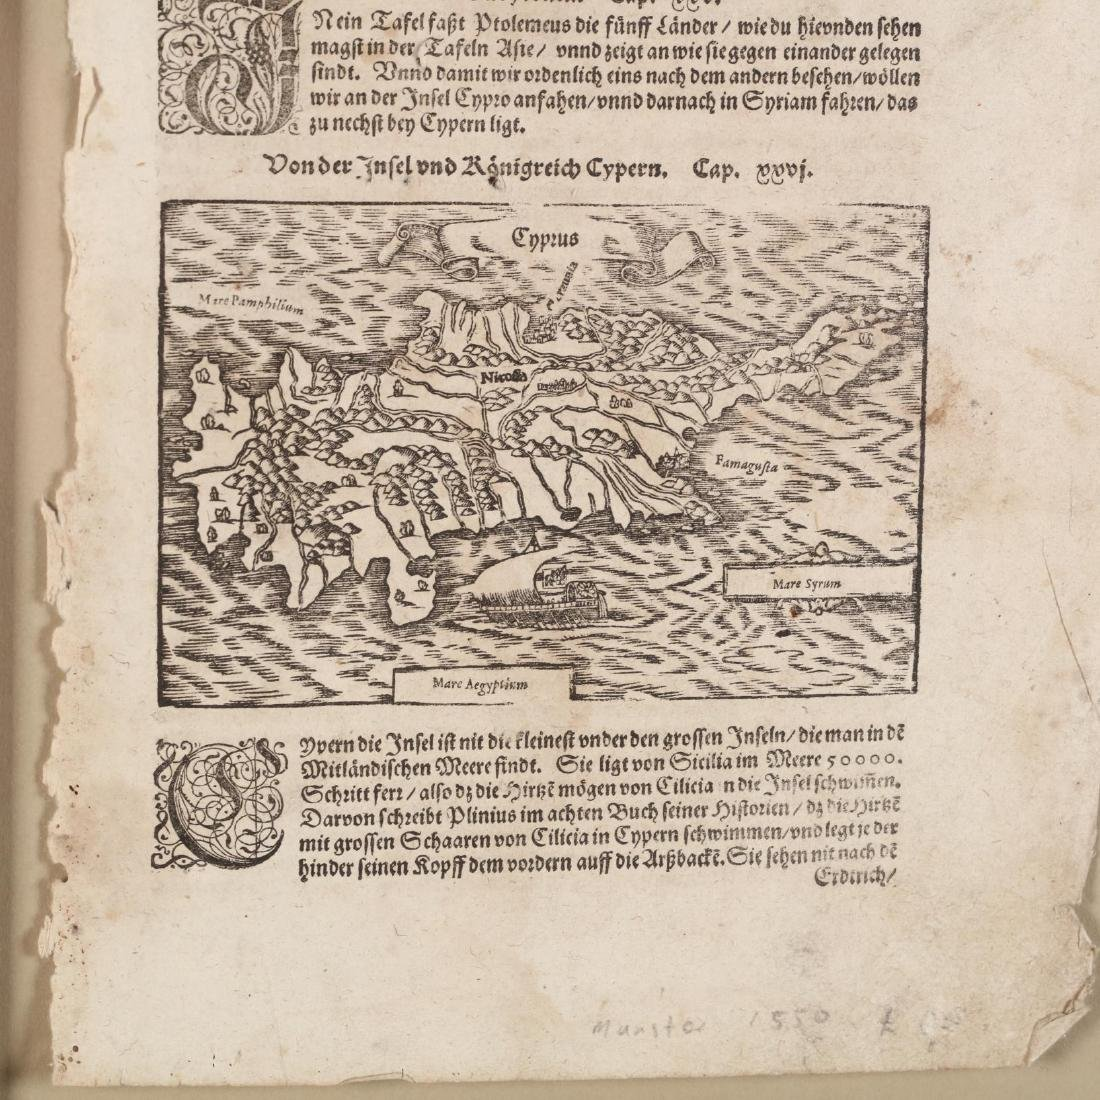 Münster, Sebastian. Book Leaf With Map of Cyprus - 3